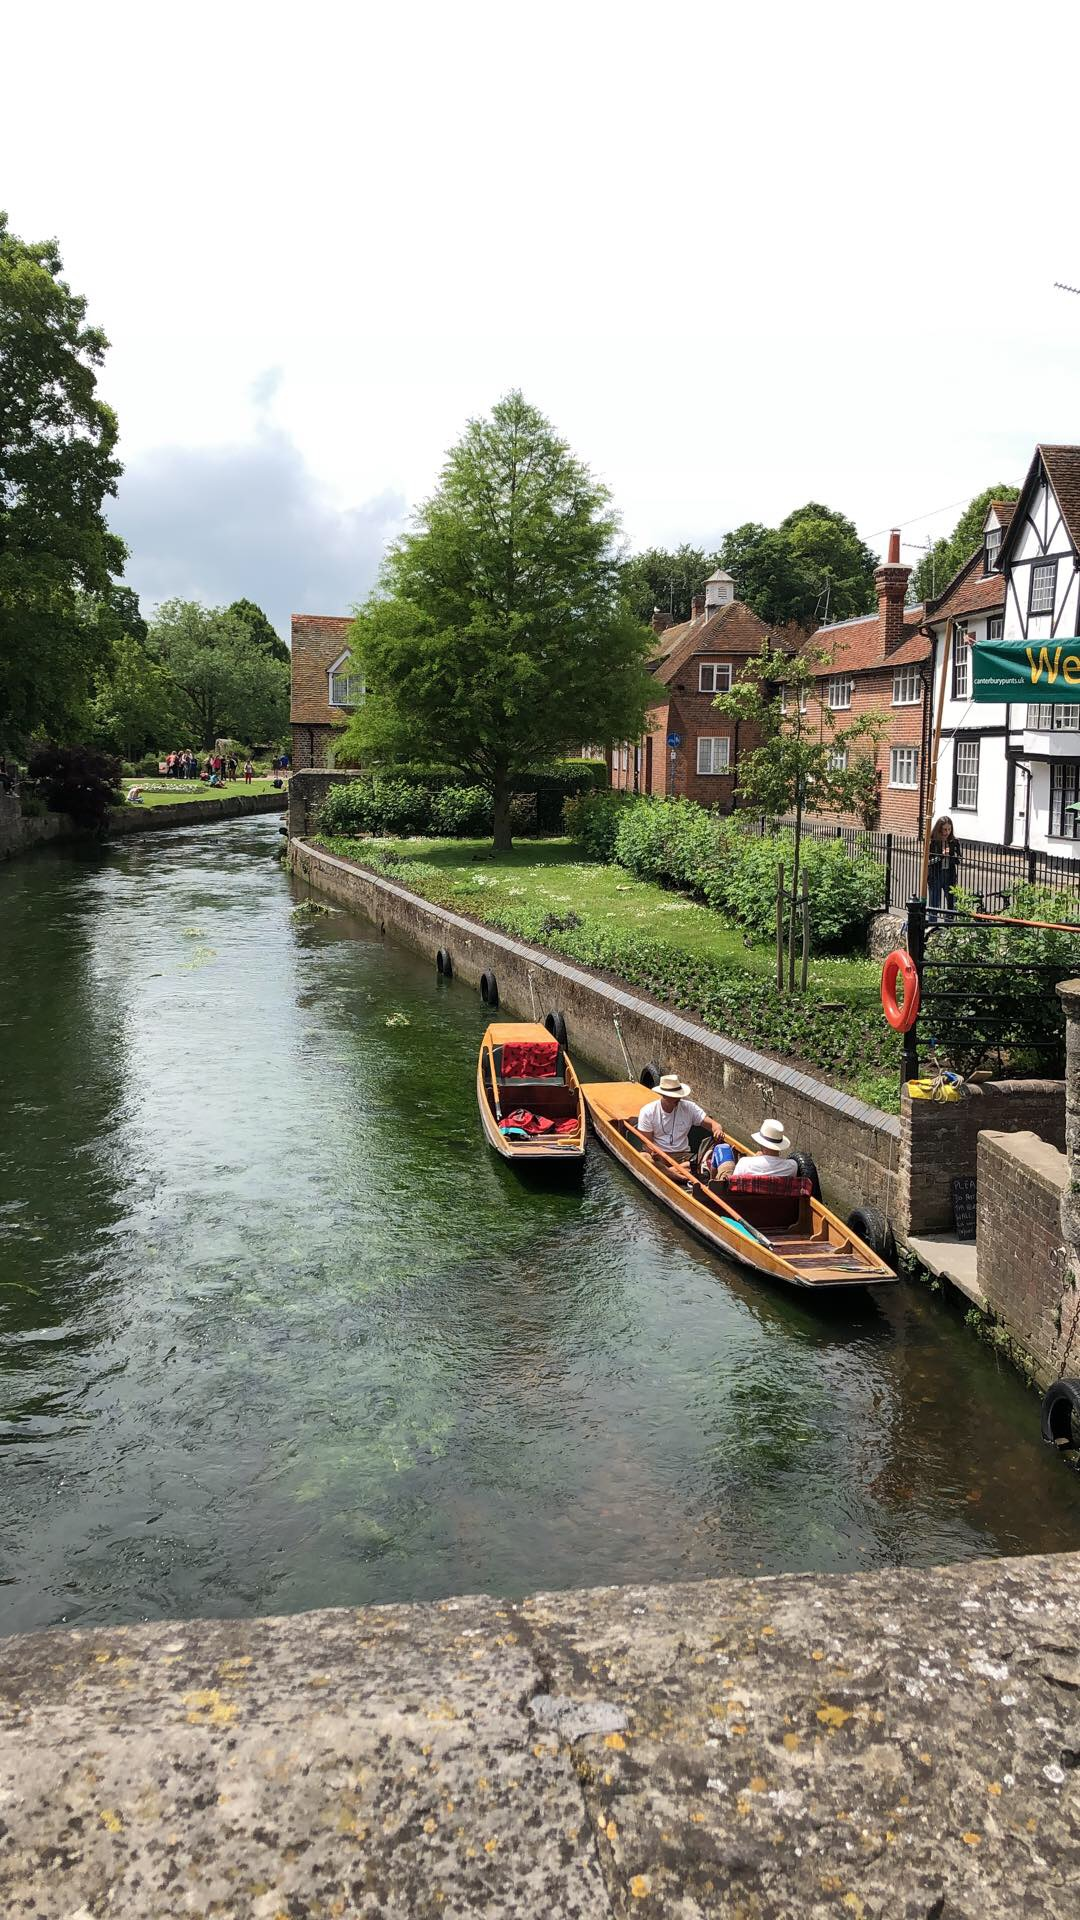 View from a bridge over the river in Canterbury